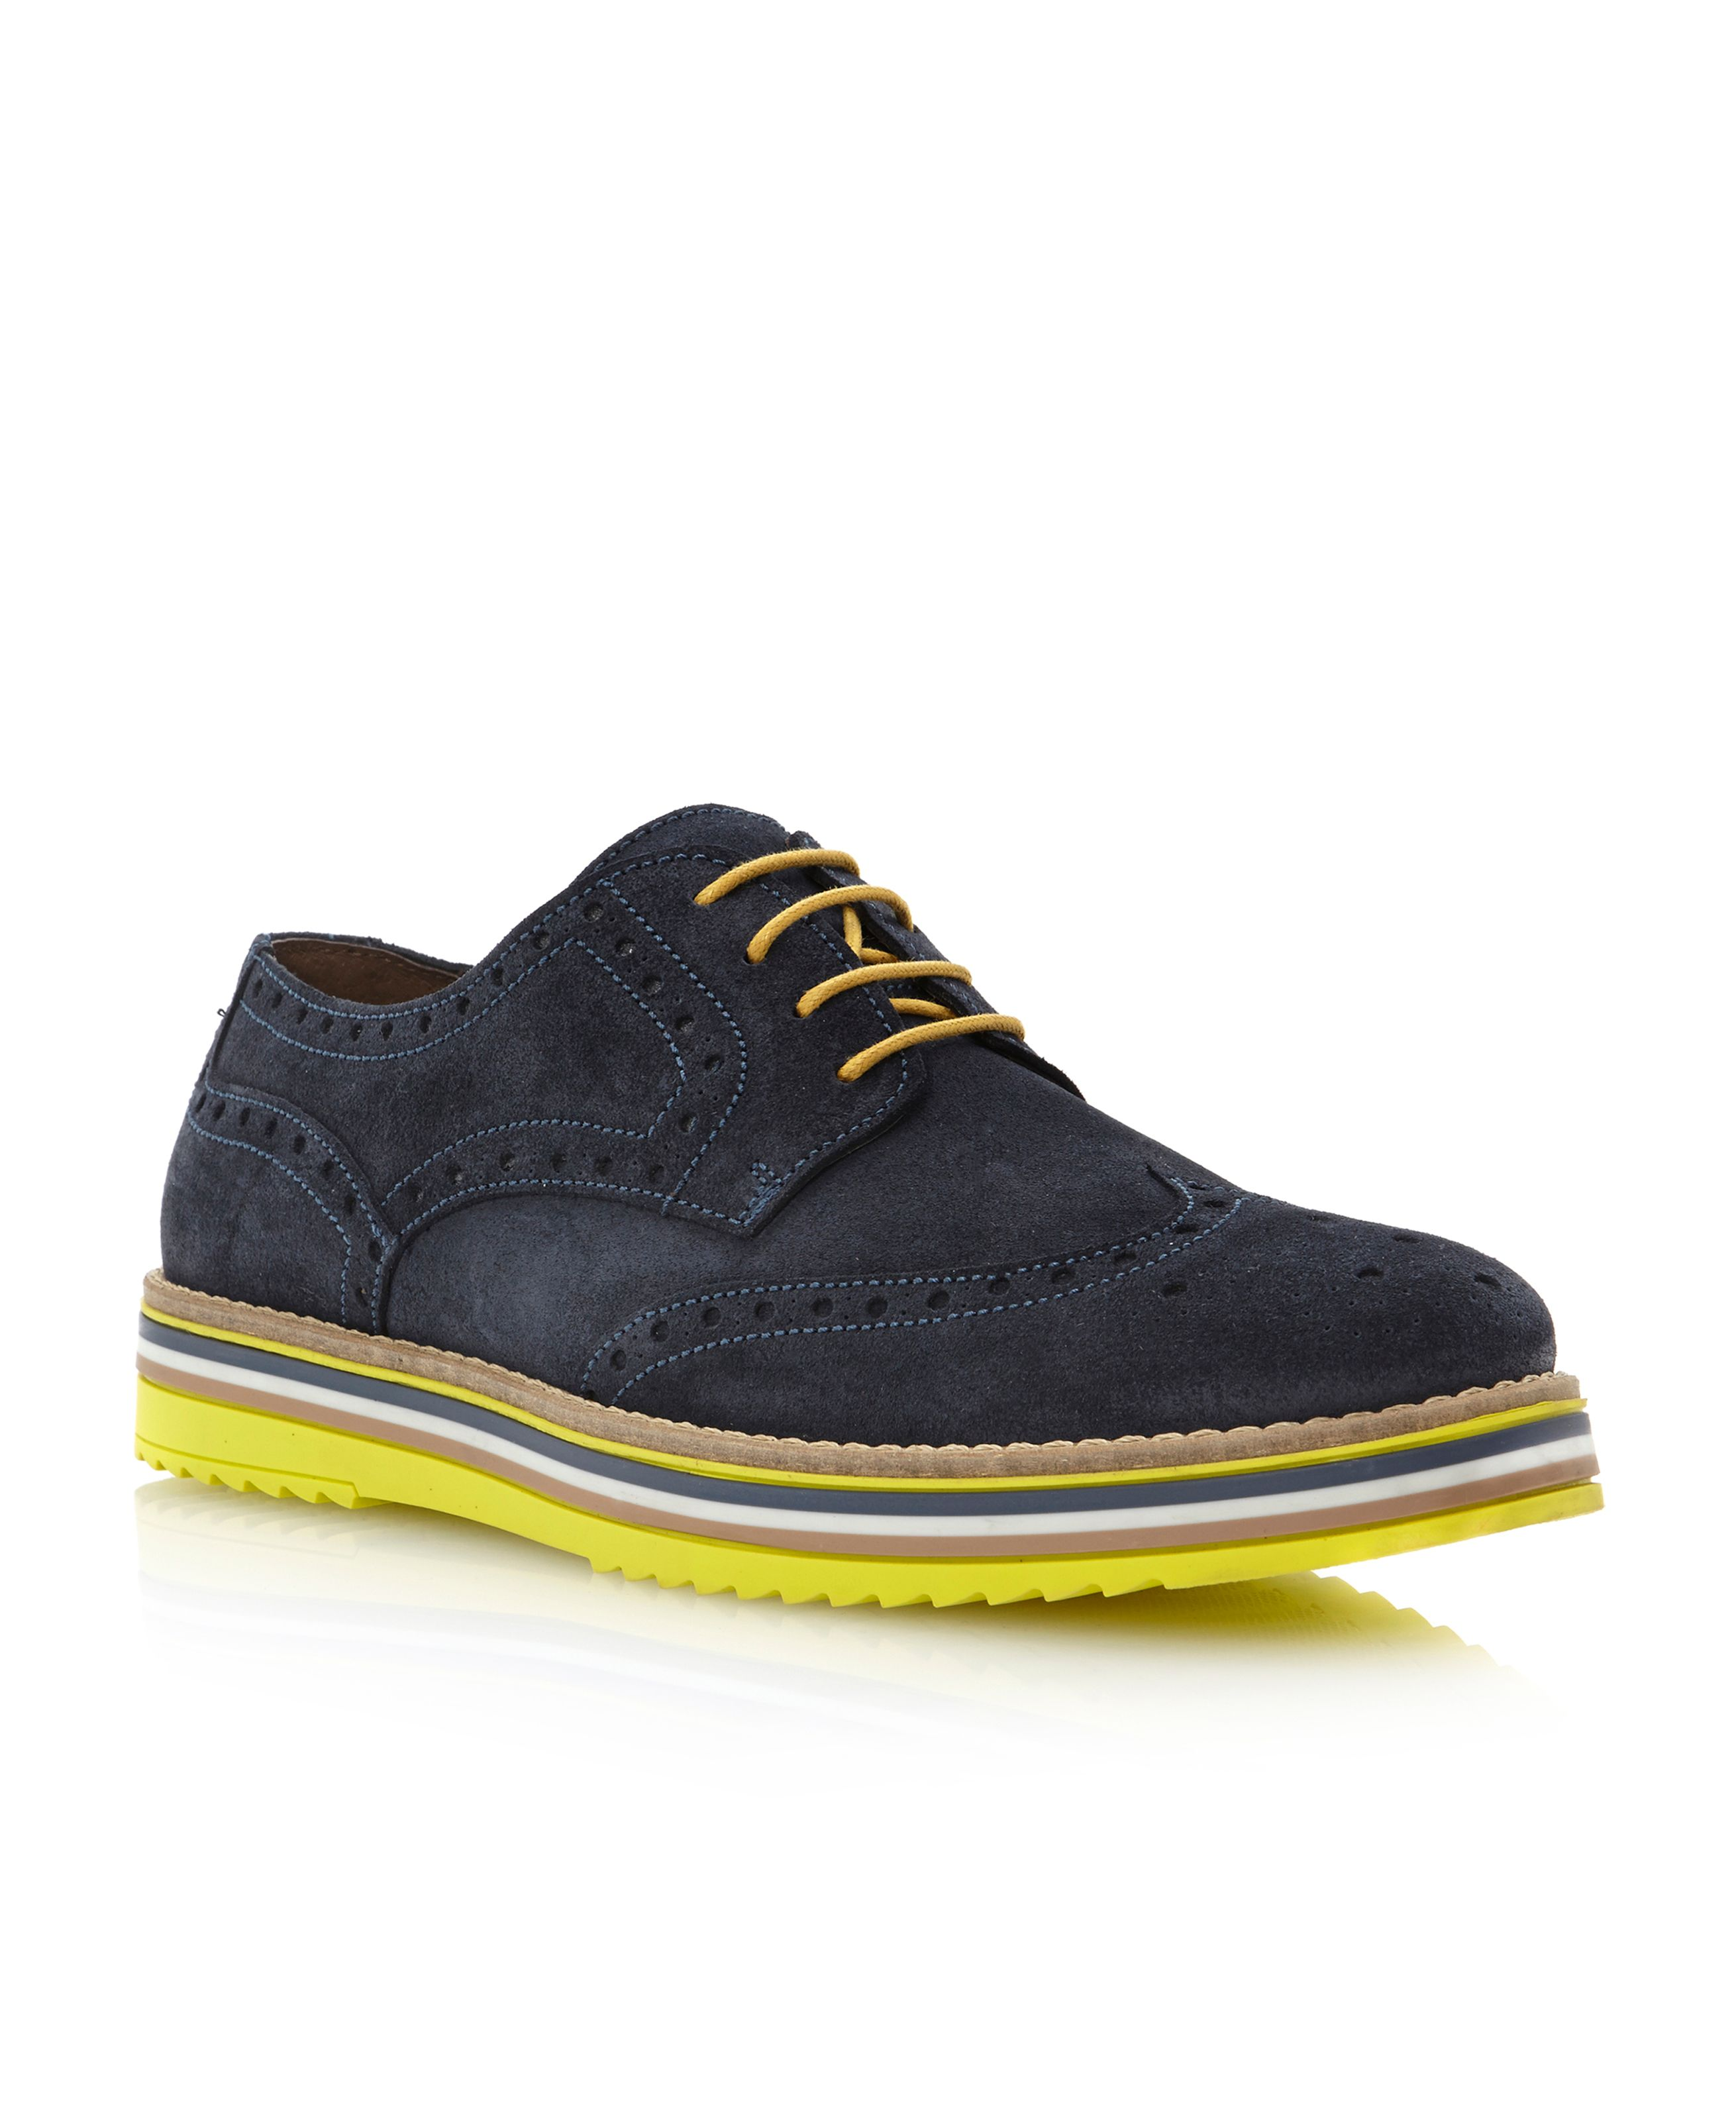 Bumbled-braid wedge brogue